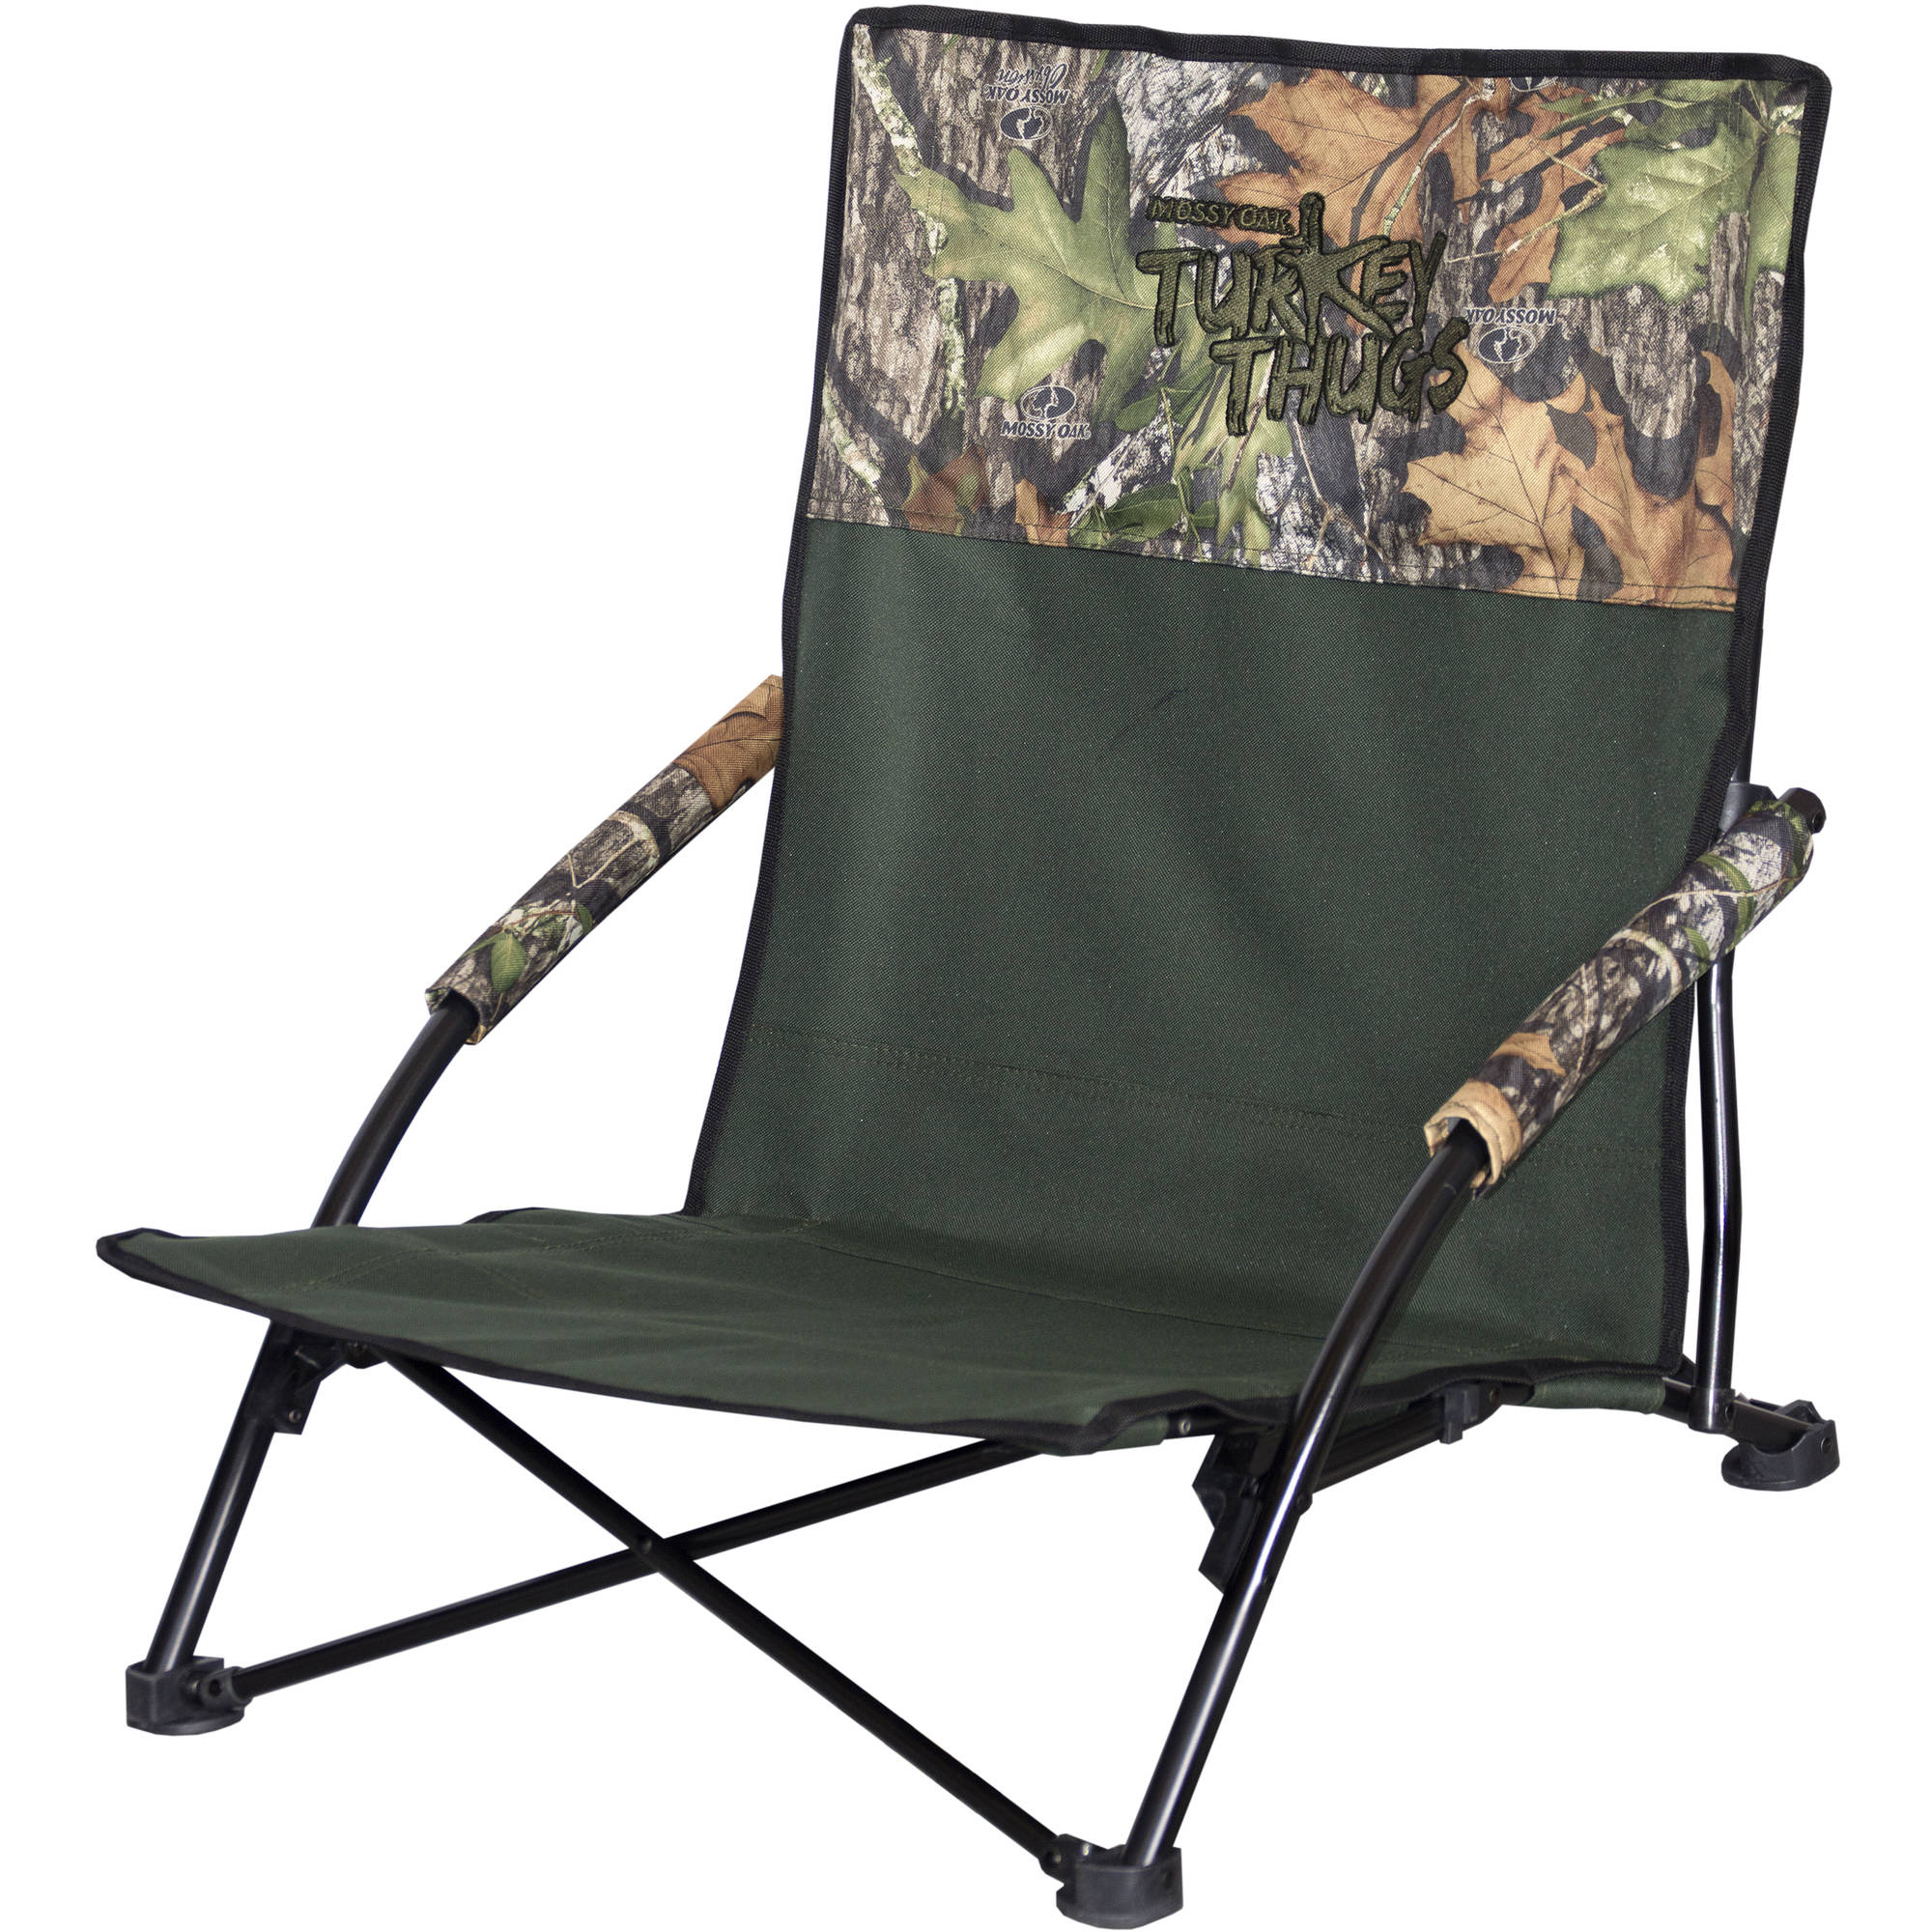 Mossy Oak Turkey Thugs Turkey Hunting Chair